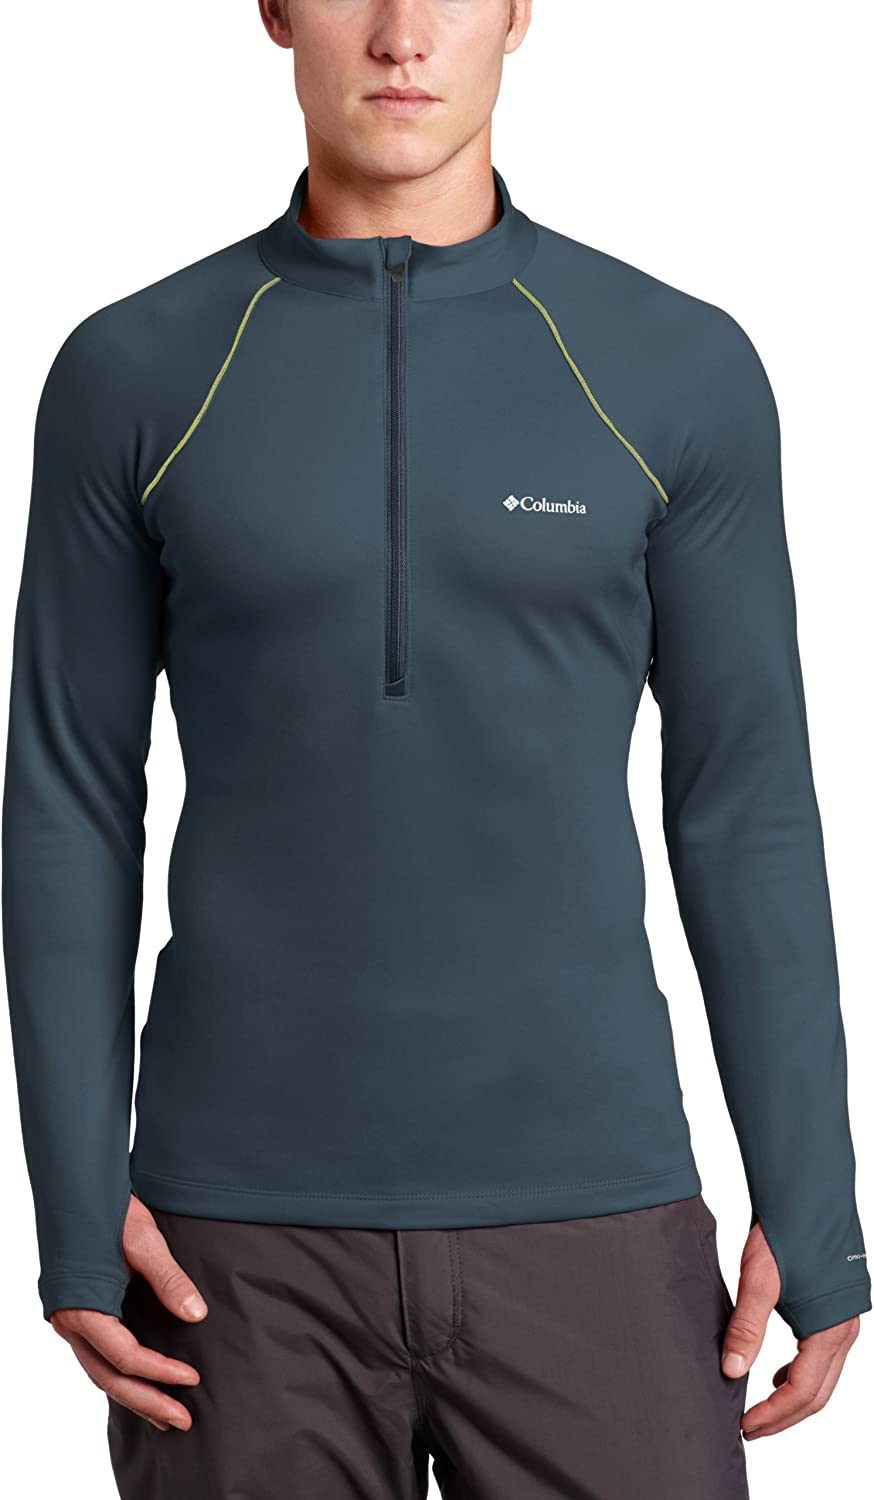 Columbia Men's Expedition Long Finally resale start Special price for a limited time Sleeve 1 2 Shirt Zip